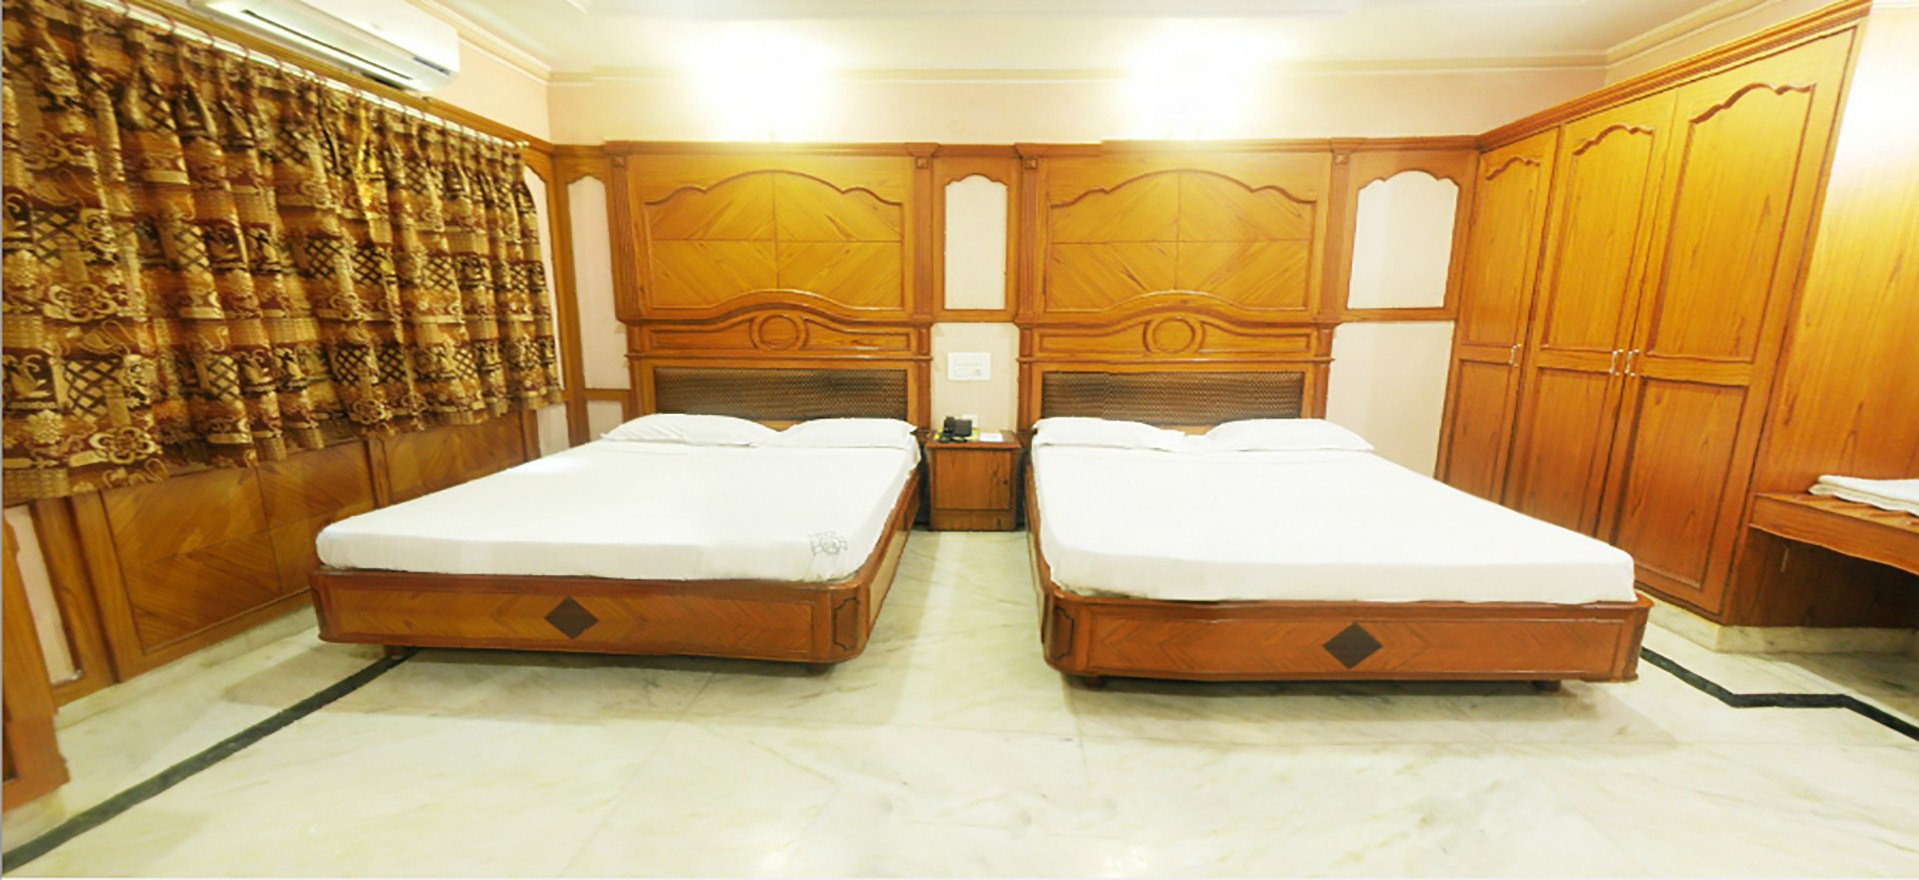 Hotels in vellore,Restaurant in vellore,Conference halls in